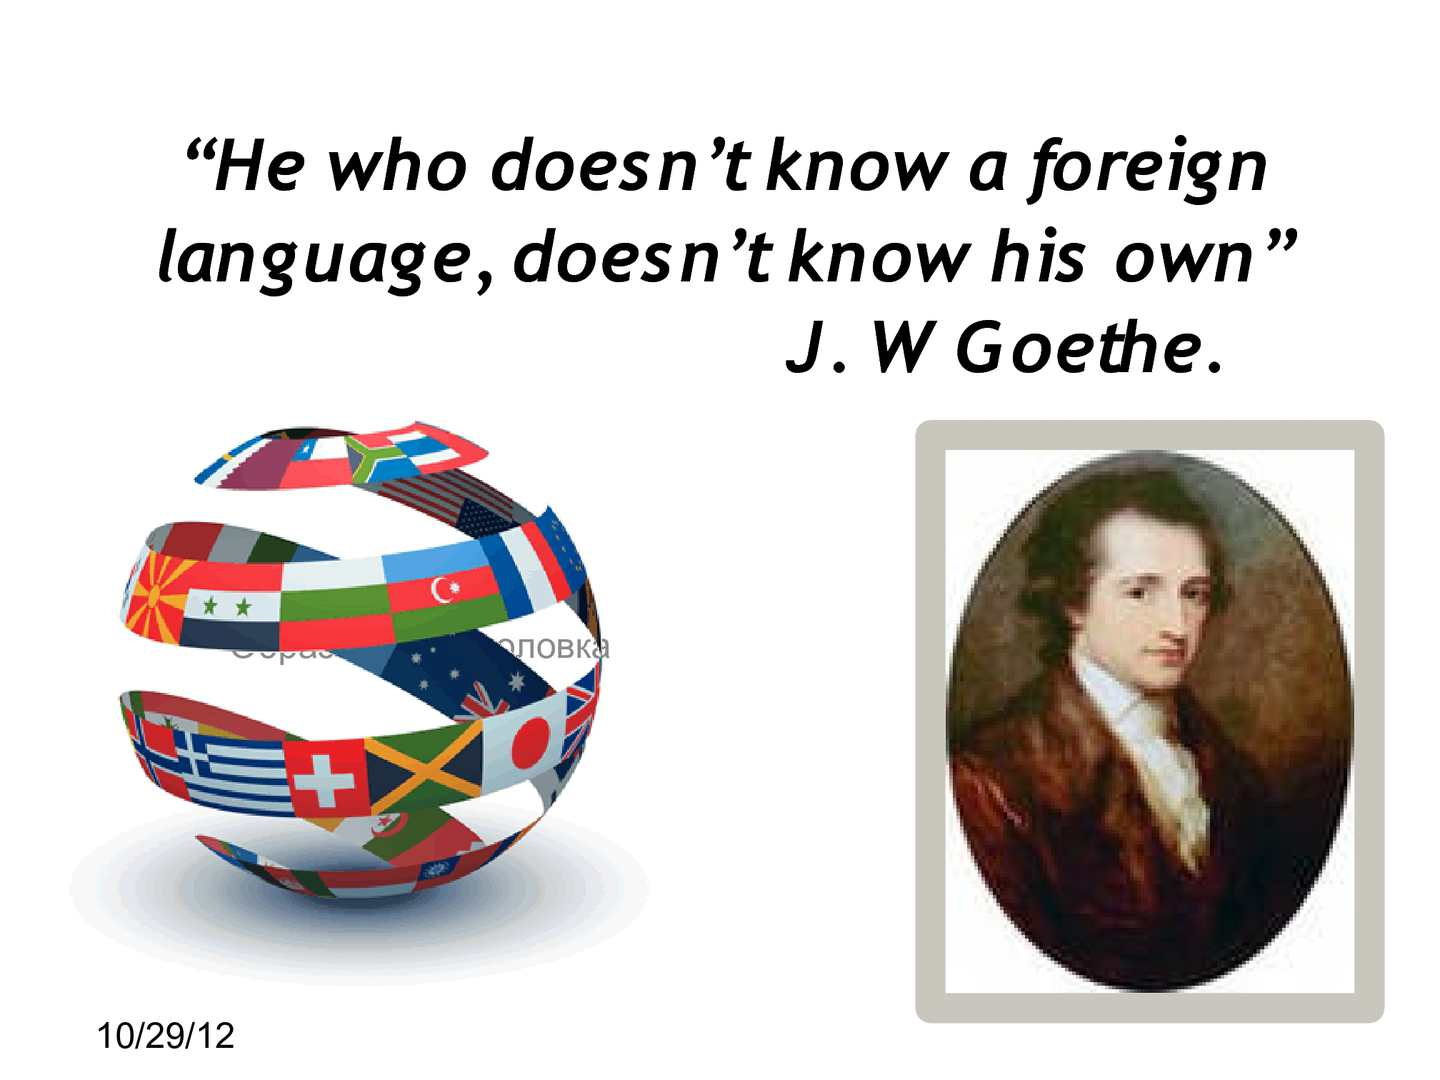 He who doesn't know a foreign language